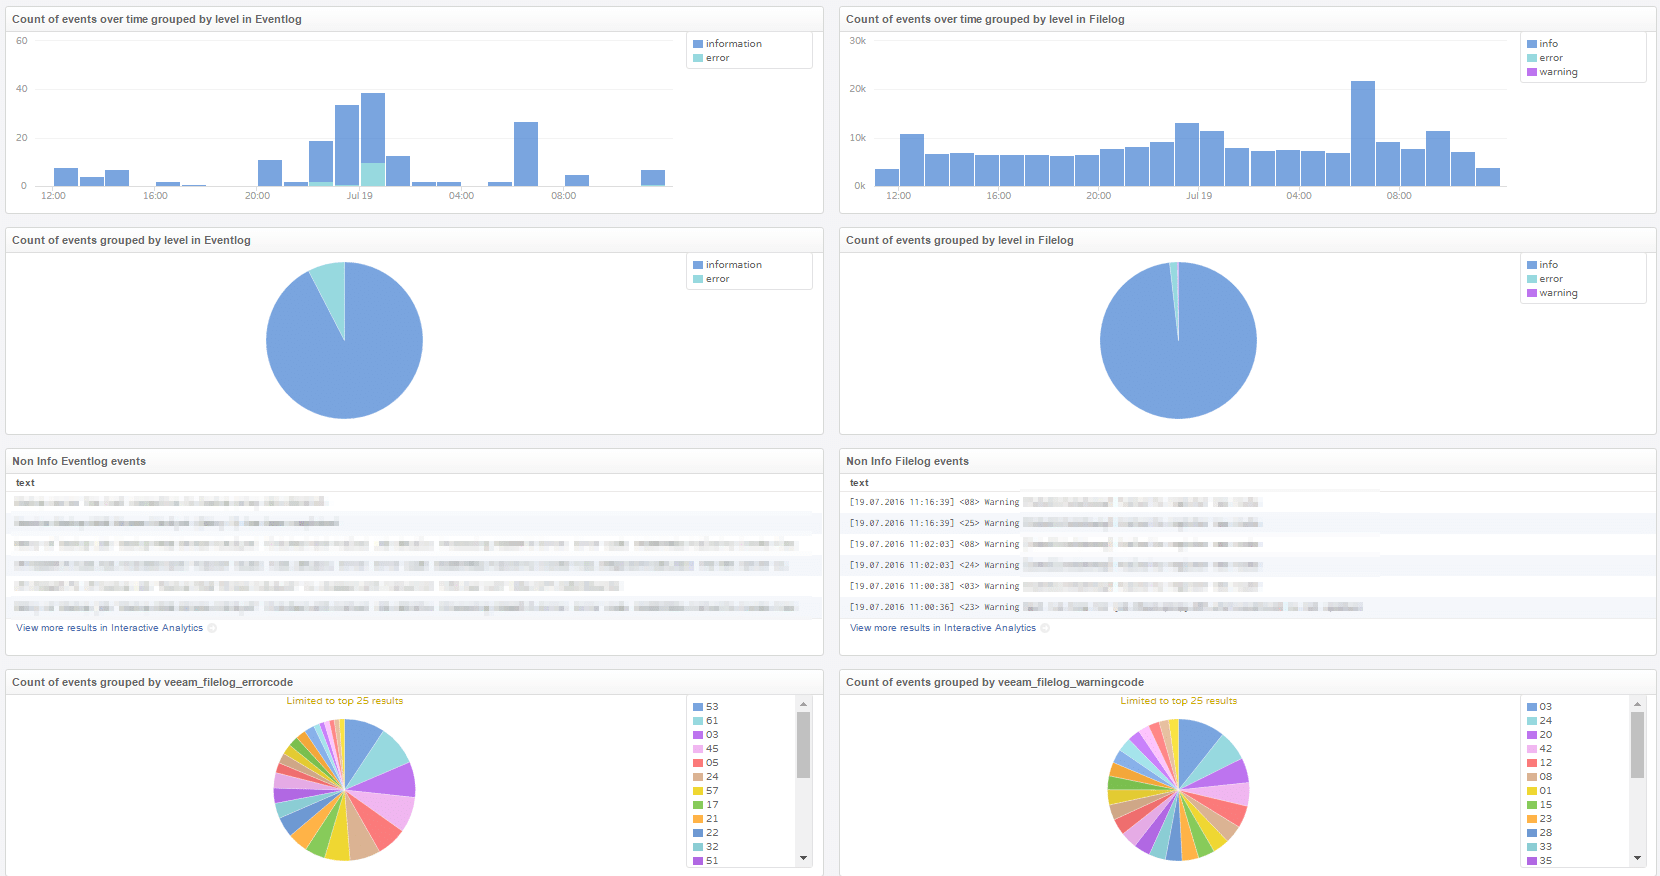 vRealize Log Insight Content Pack für Veeam - Dashboard - Allgemein